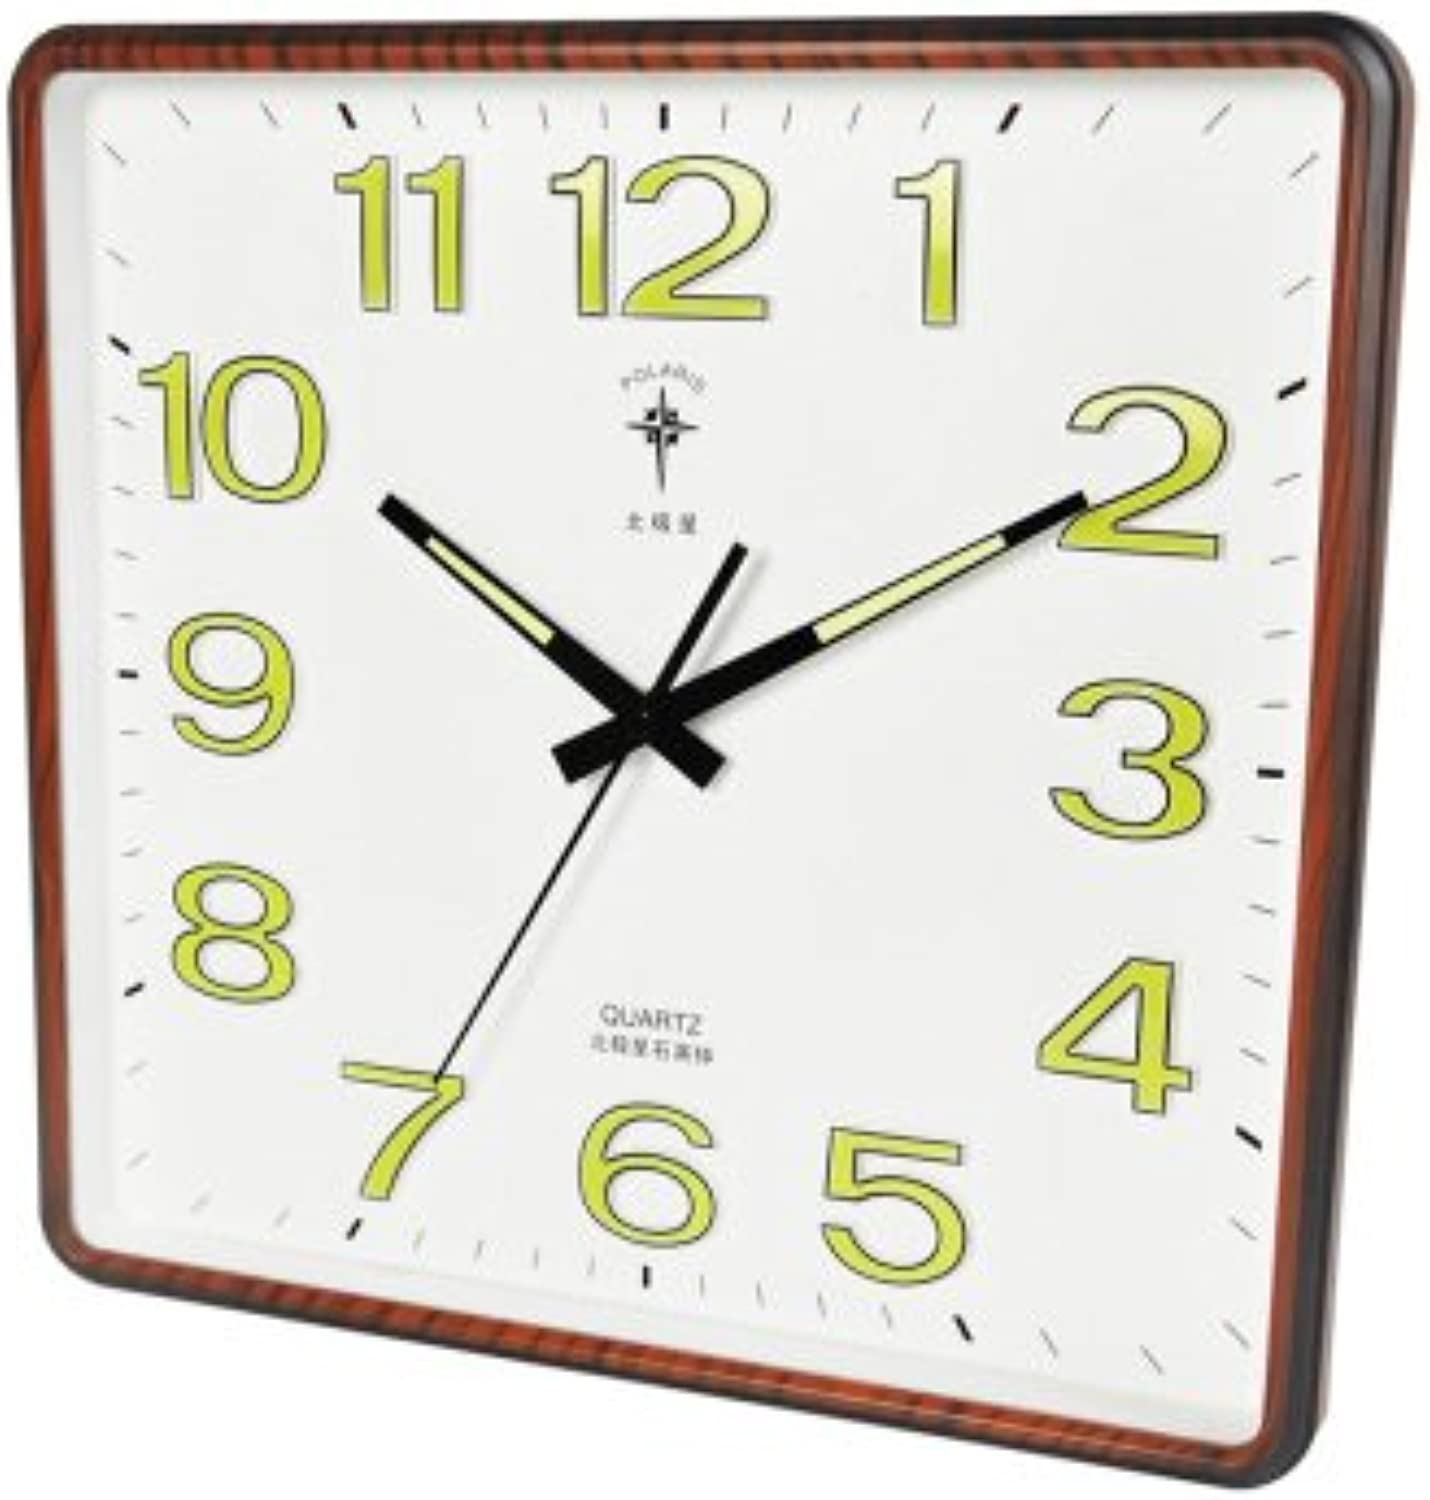 Znzbzt Simple Creative Mute Wall Clock The Silence in The Living Room Wall Clock for Clock, The Modern 000 Bedroom Night Light Quartz Clock Fashion Wall Table,6823 a nor